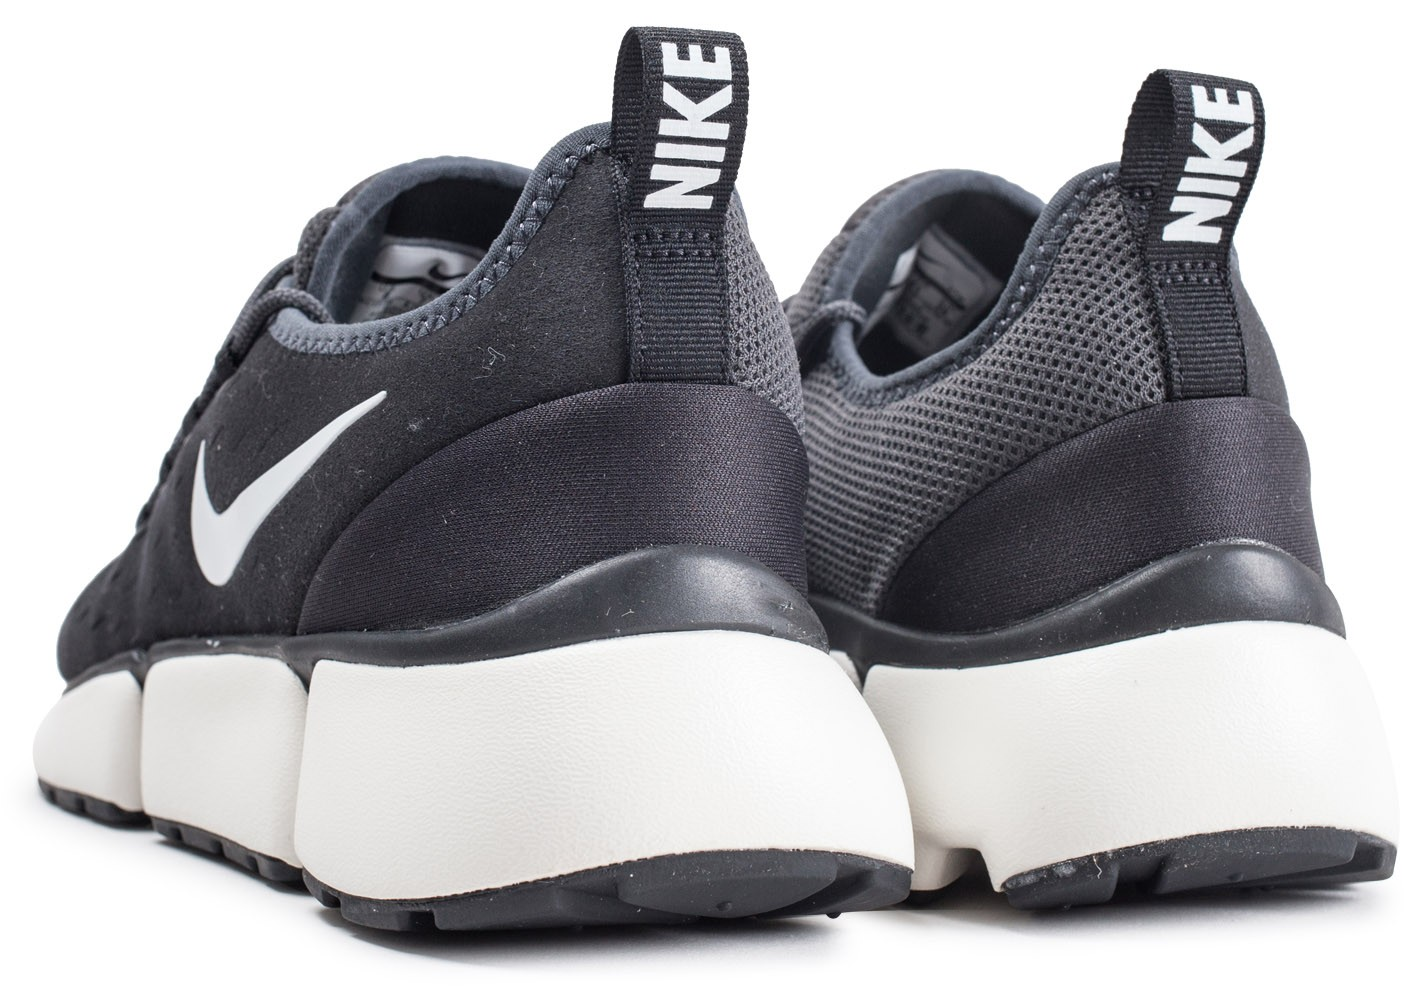 Pocket Homme Fly Chaussures Nike Noire Blanche Dm Et Baskets 8vdqwd